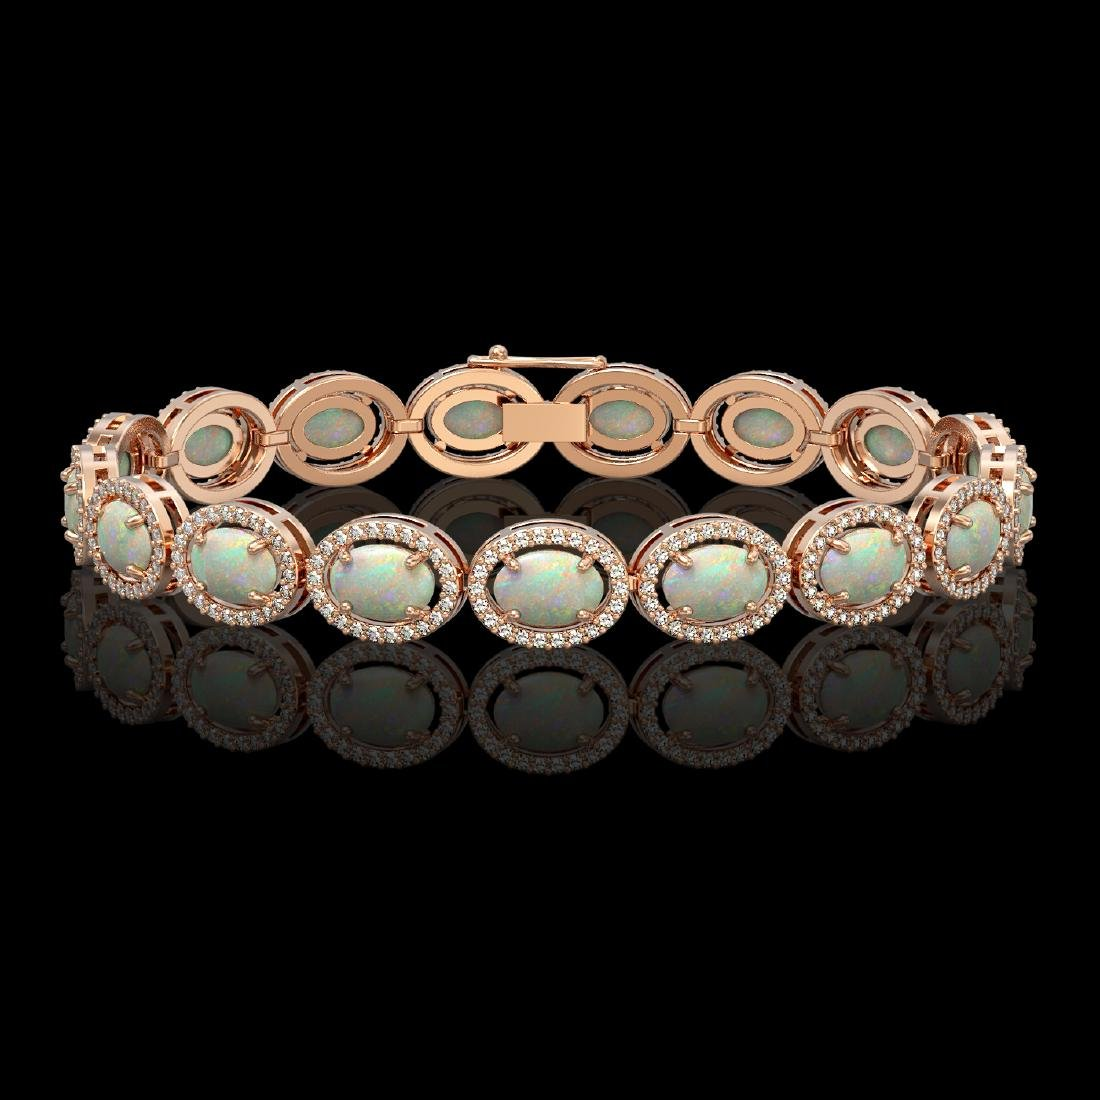 14.24 CTW Opal & Diamond Halo Bracelet 10K Rose Gold